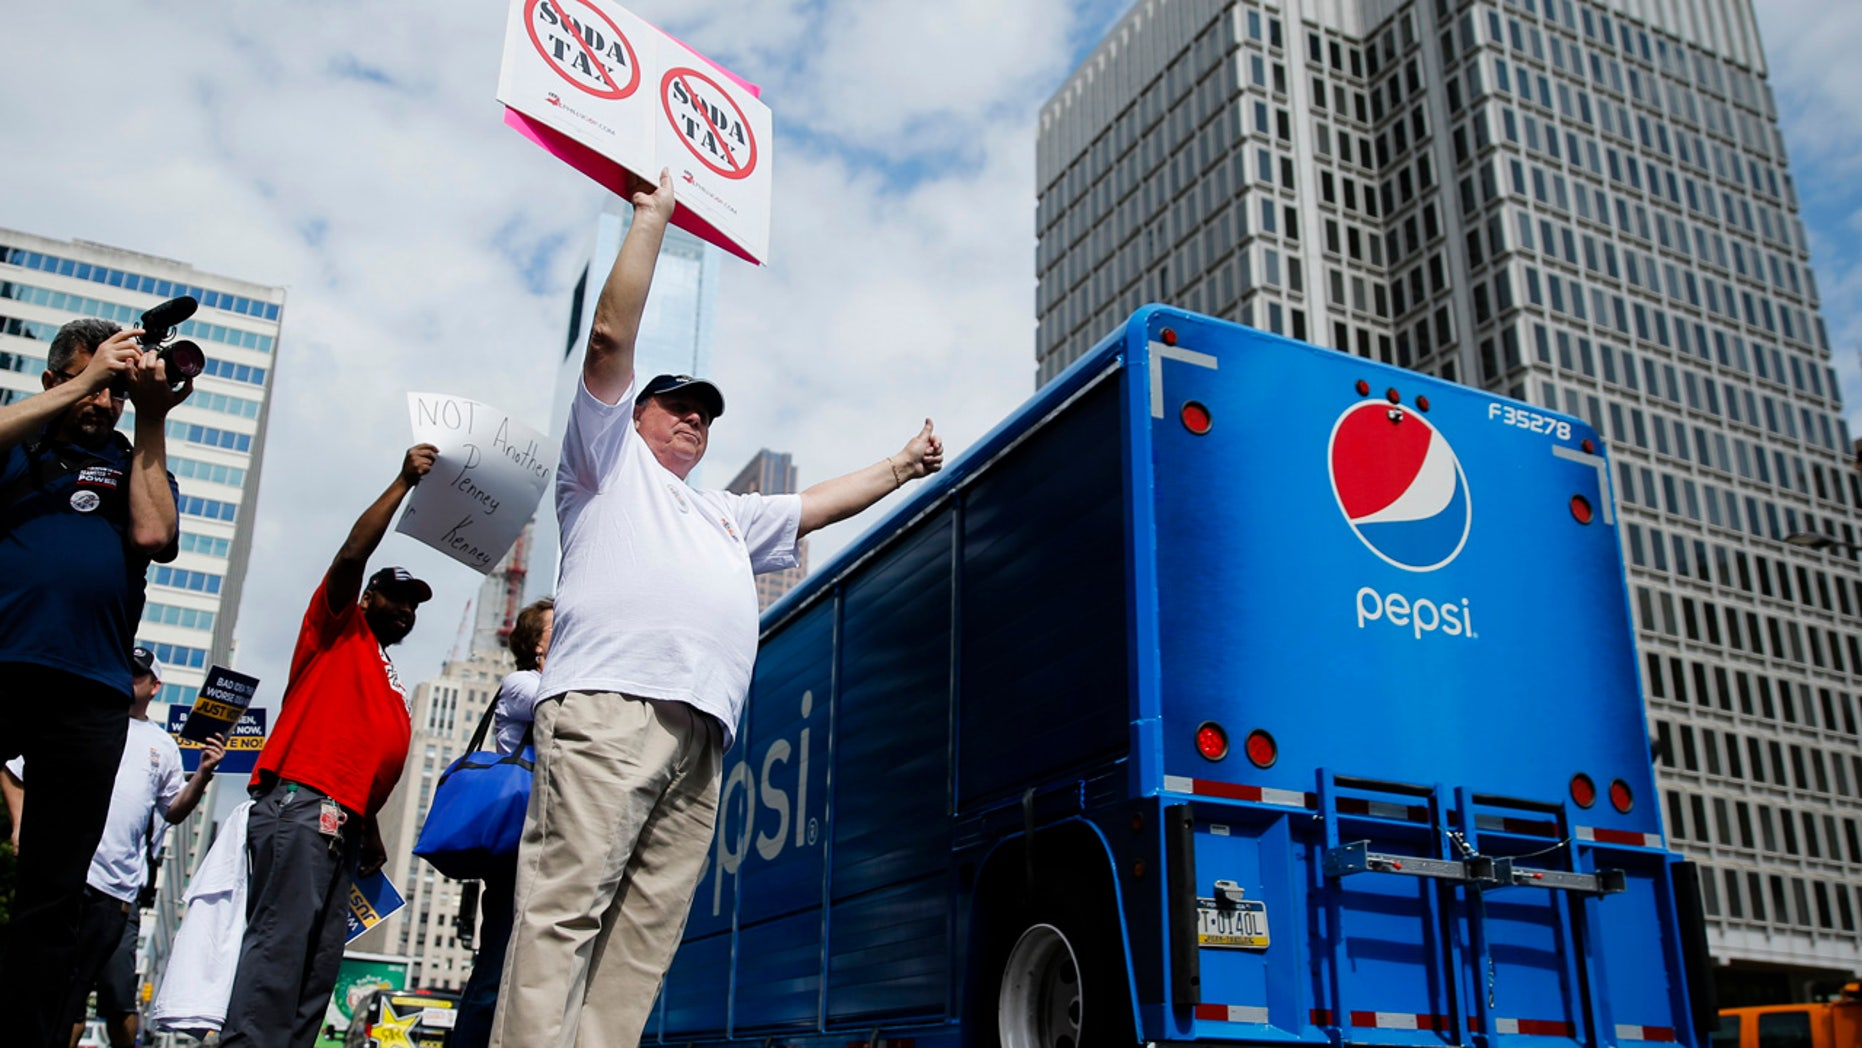 June 8, 2016: Opponents of a proposed sugary drink tax demonstrate outside City Hall in Philadelphia.